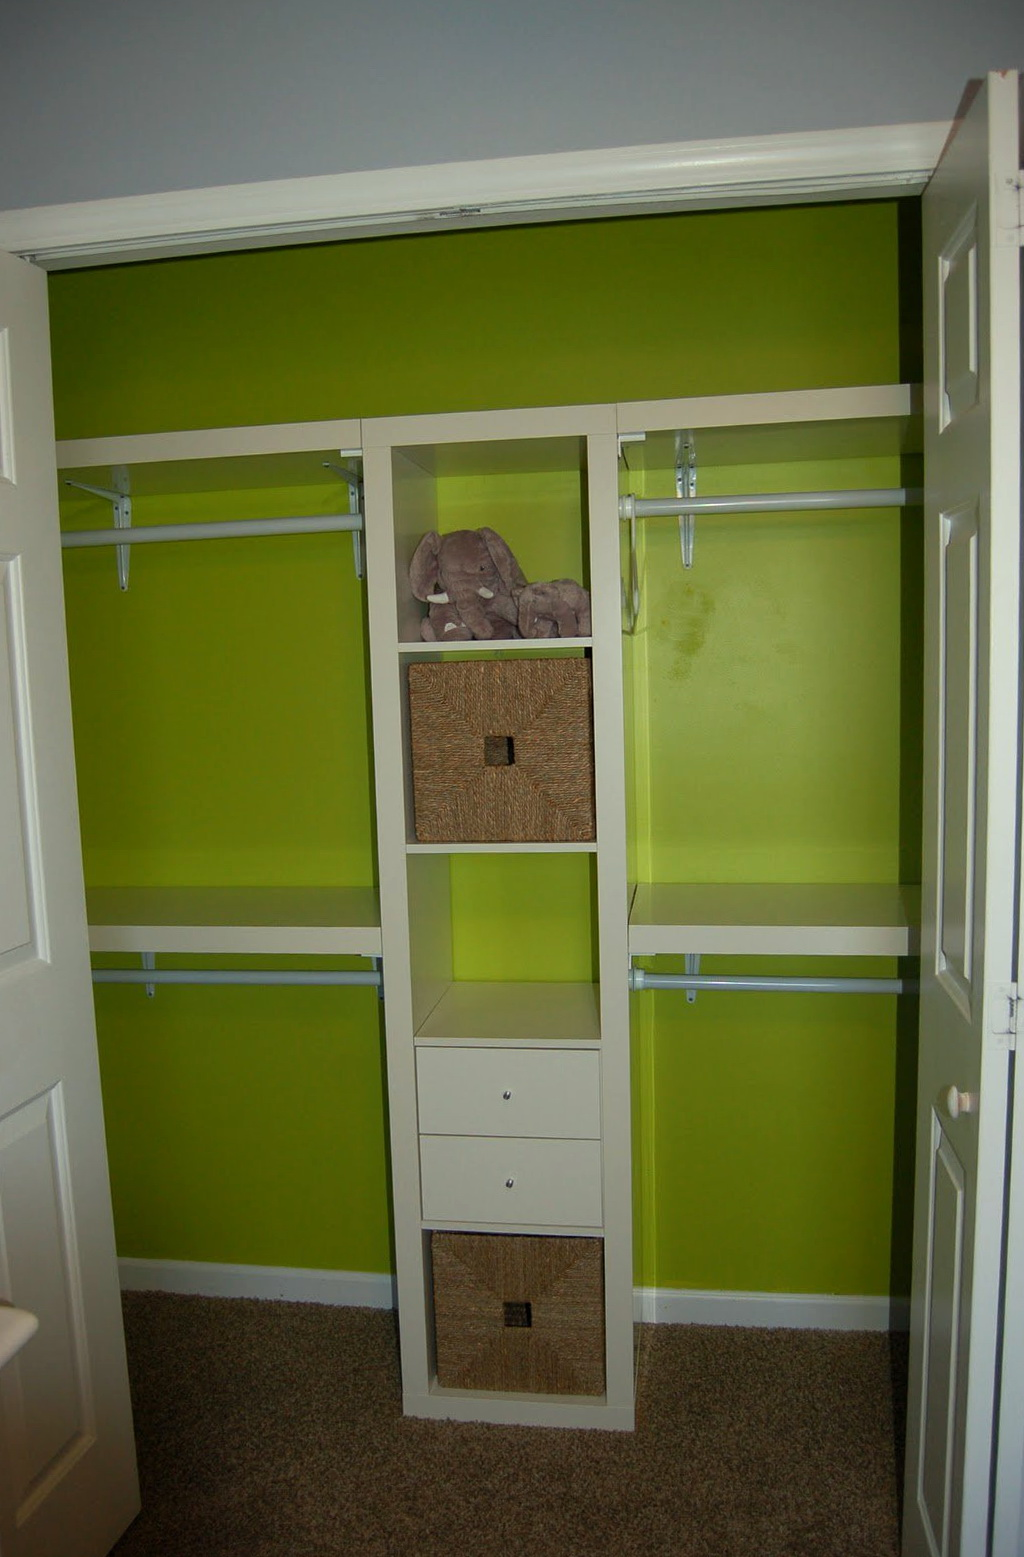 Shelves For Closet Ikea Home Design Ideas